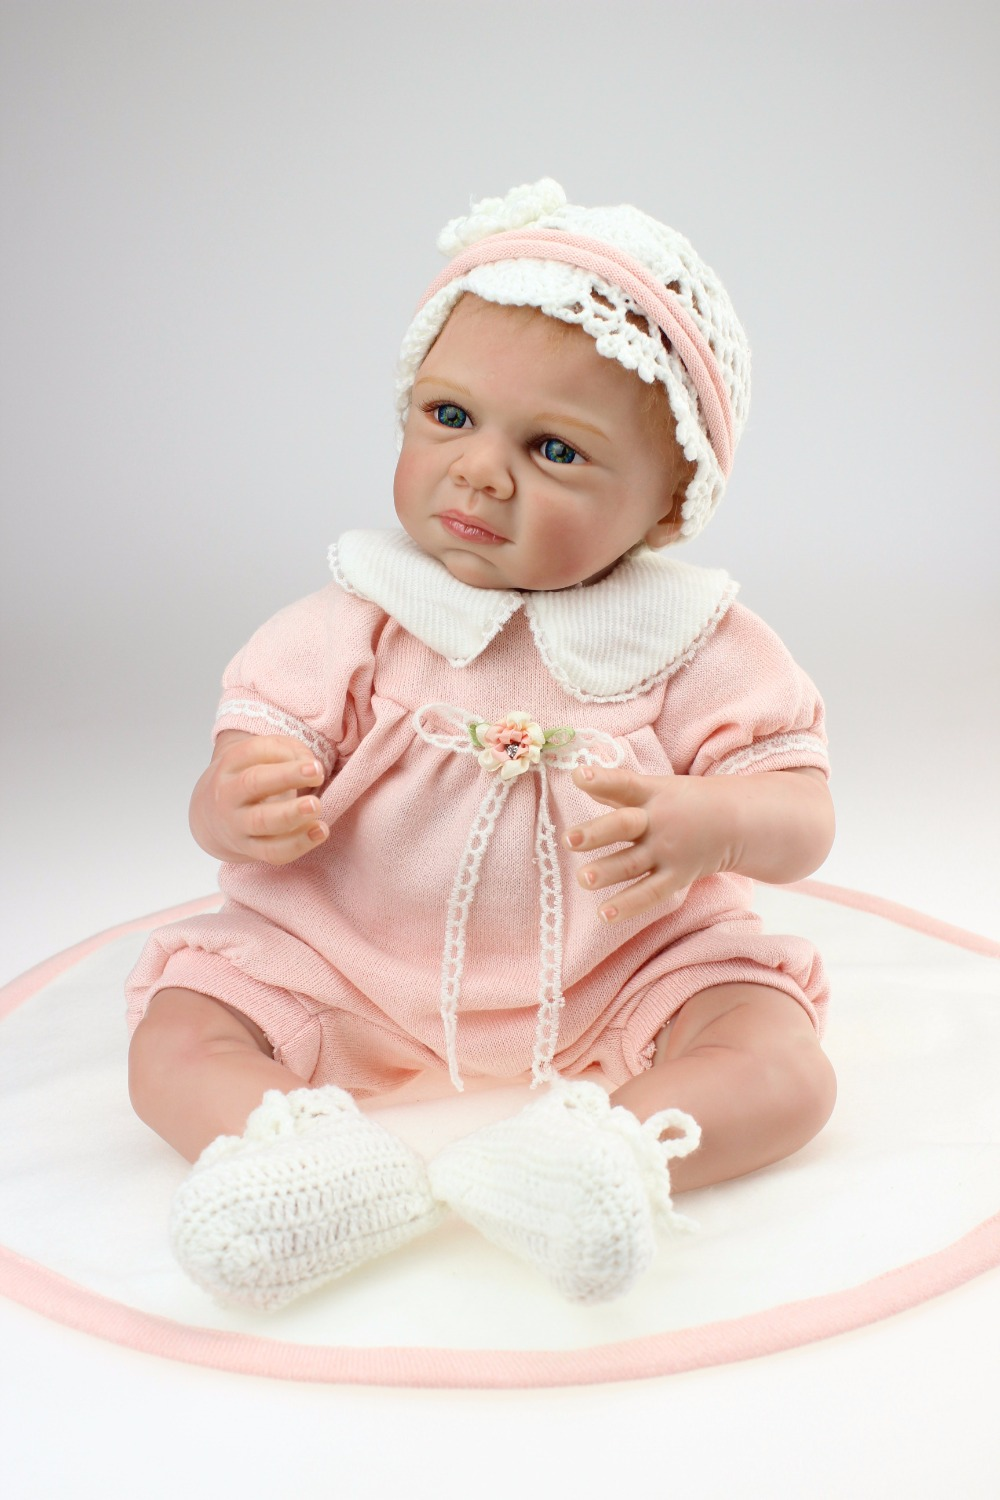 22inch 55cm Silicone baby reborn dolls, lifelike doll reborn babies toys for girl princess gift brinquedos Children's toys(China (Mainland))